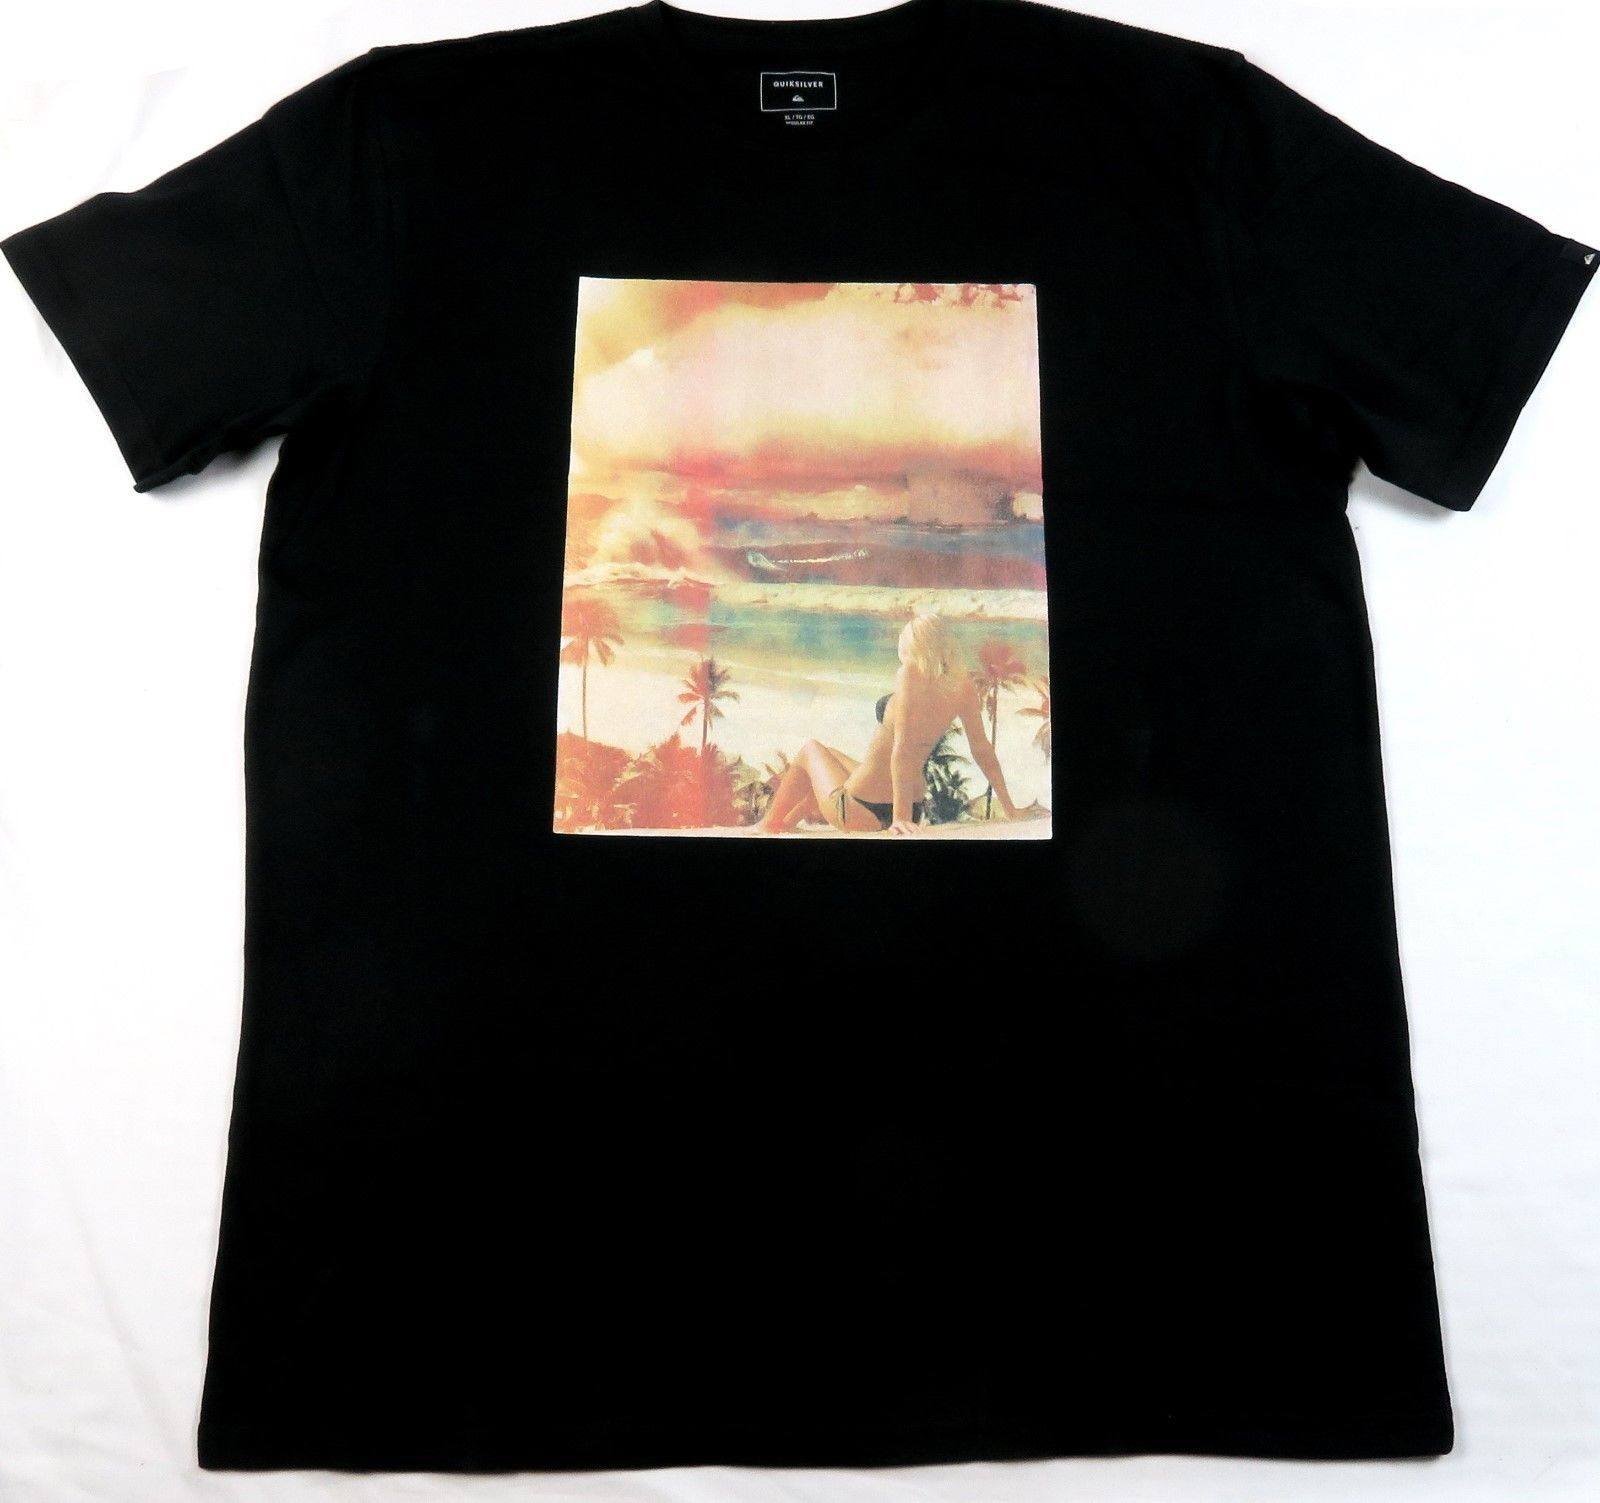 XL Quiksilver Men's Tee Shirt Surfing Beach Casual Black Photograph T-Shirt